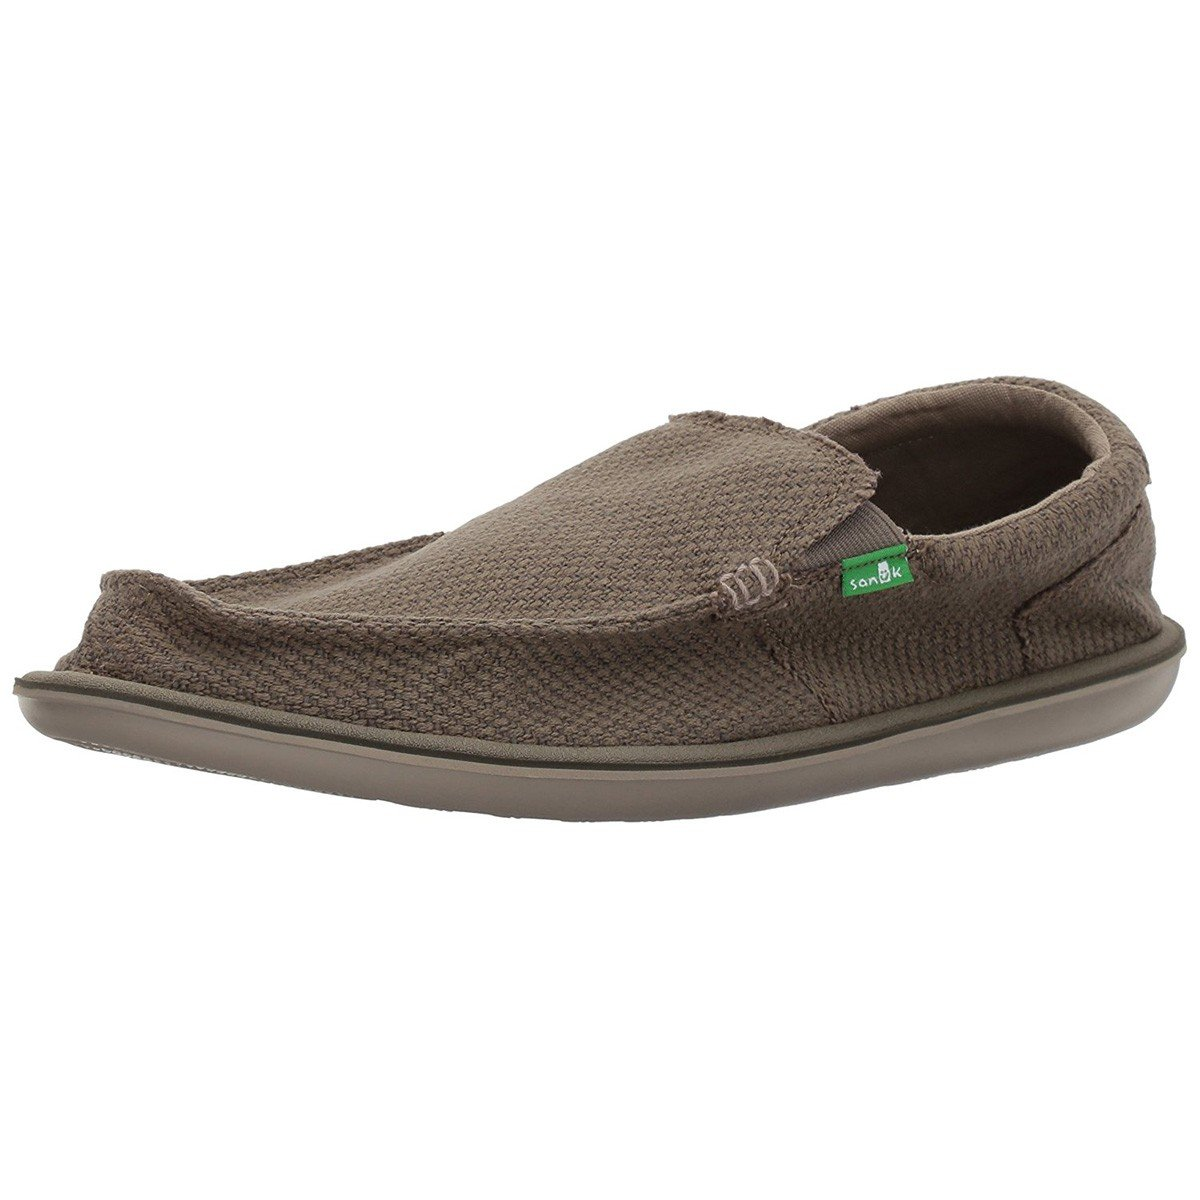 Sanuk Men's Chibalicious Slip-On, Brindle, 8 M US